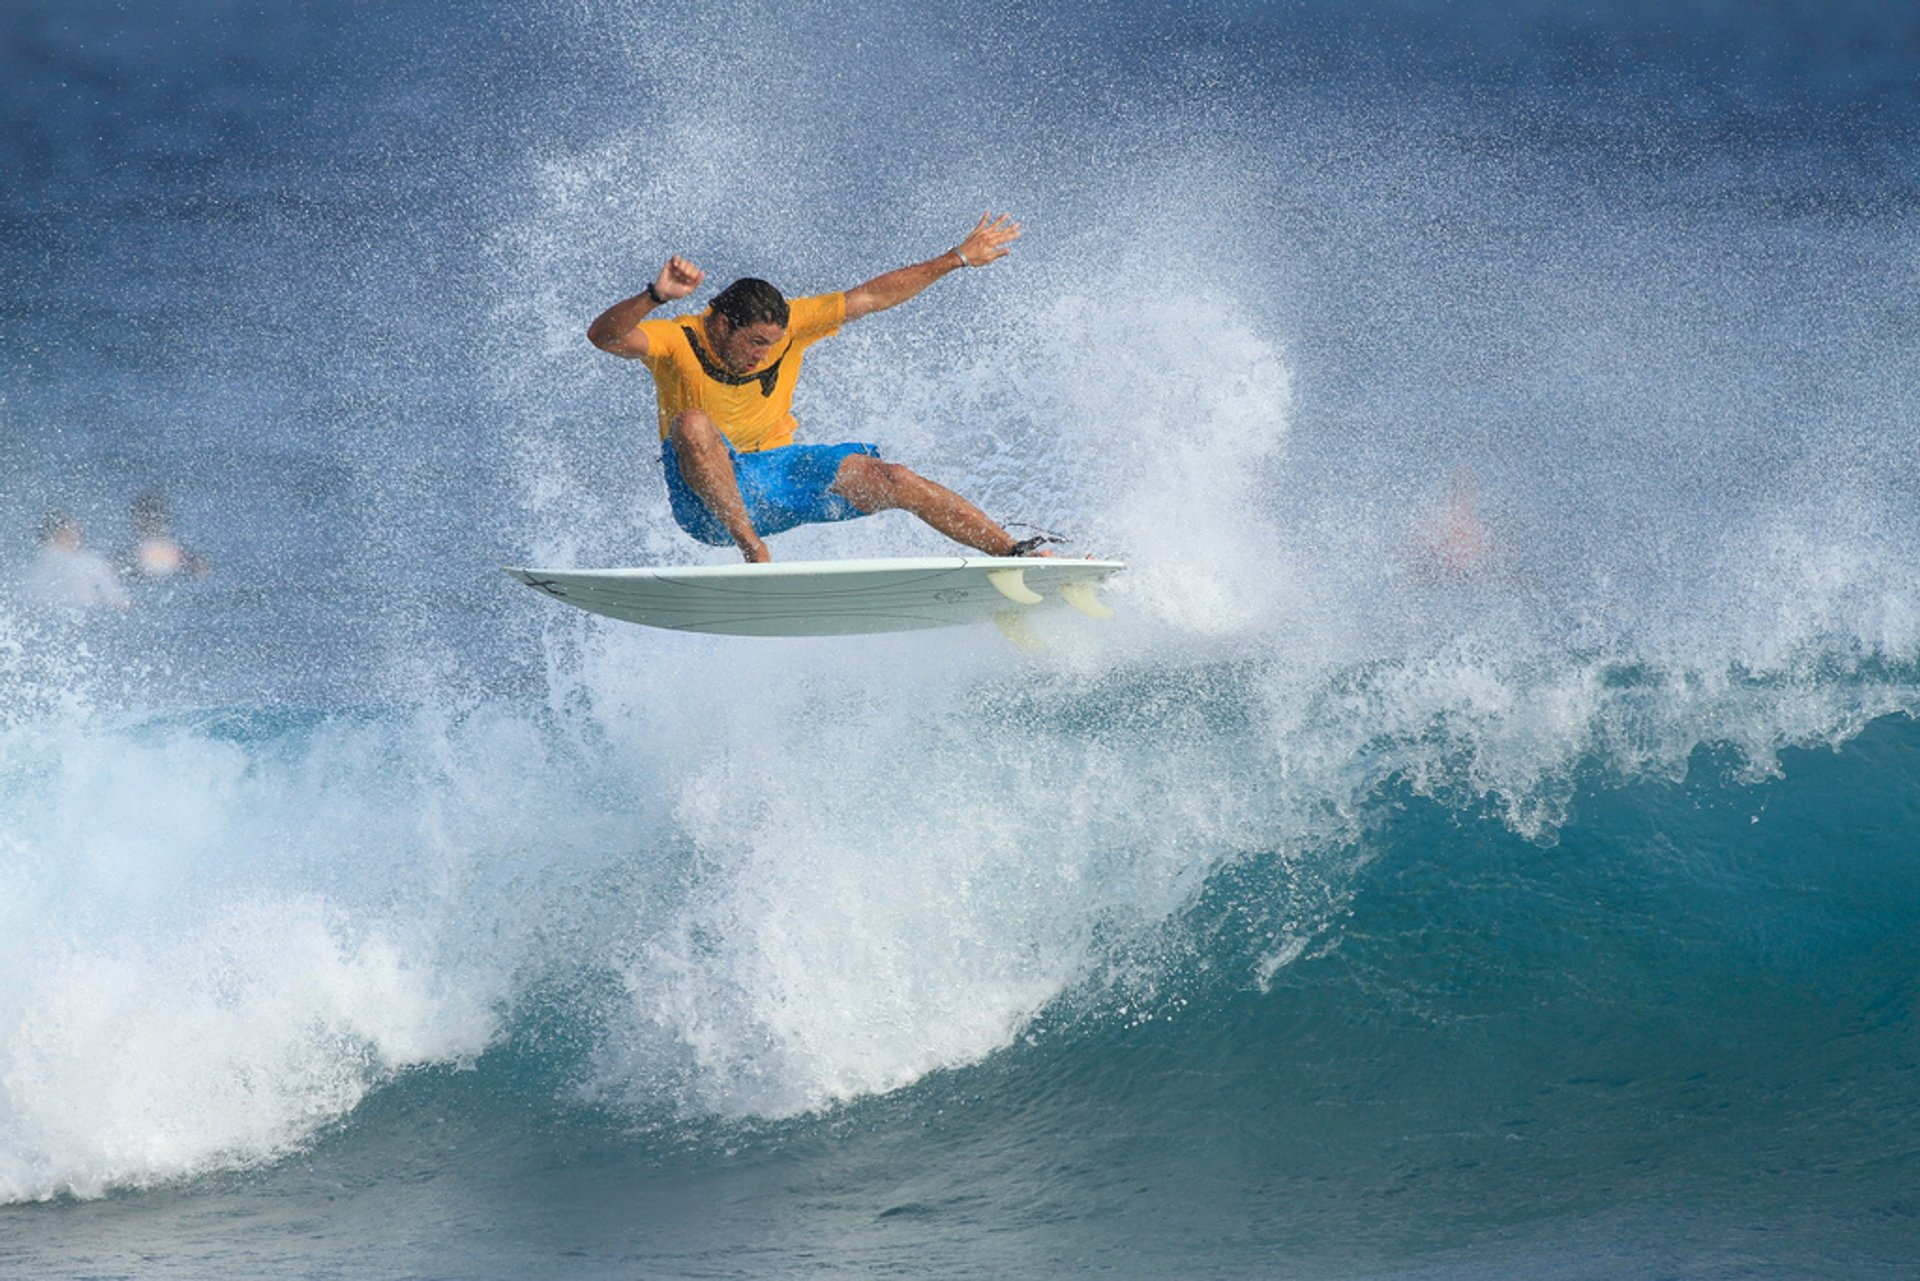 Surfing in Maldives 2020 - Best Time